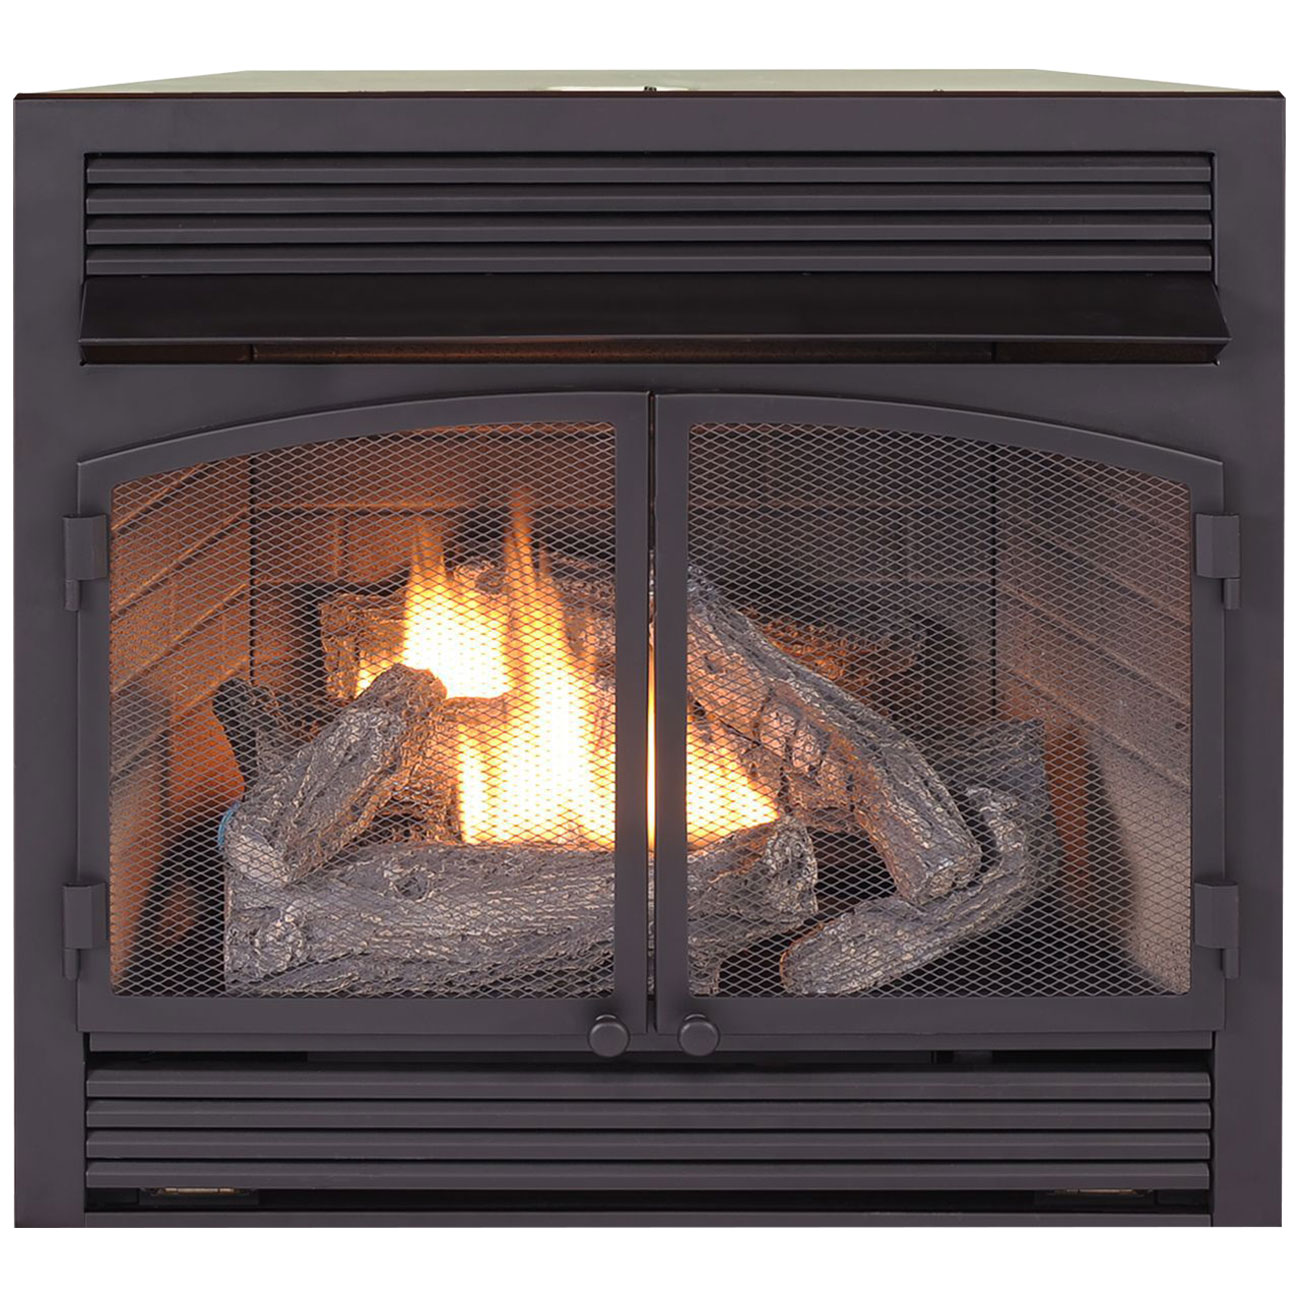 Dual Fuel Fireplace Insert Zero Clearance 32 000 Btu Procom Heating